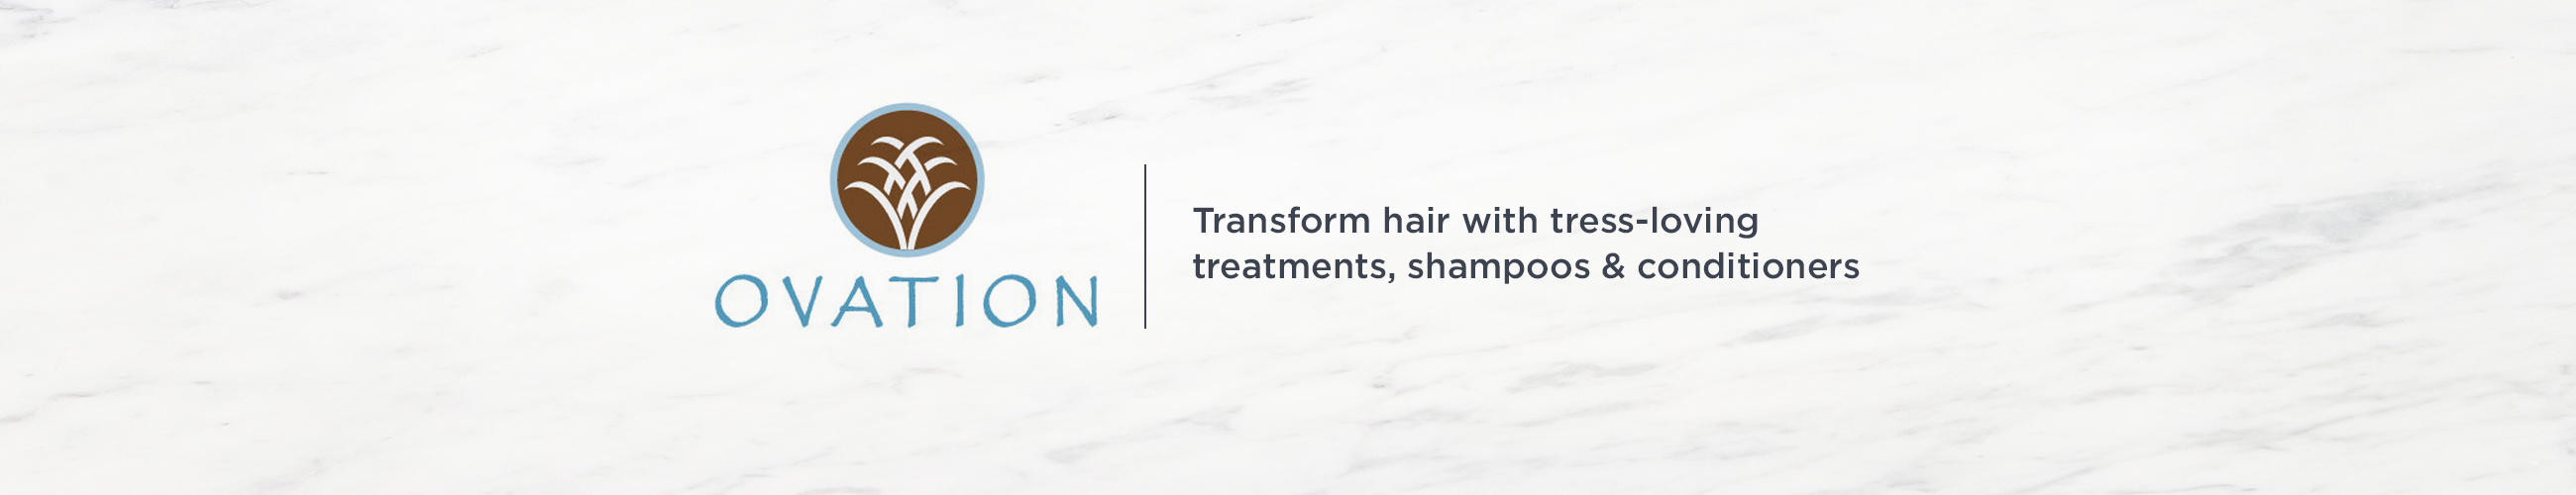 Ovation. Tress-transforming shampoos, conditioners & cell therapy treatments.